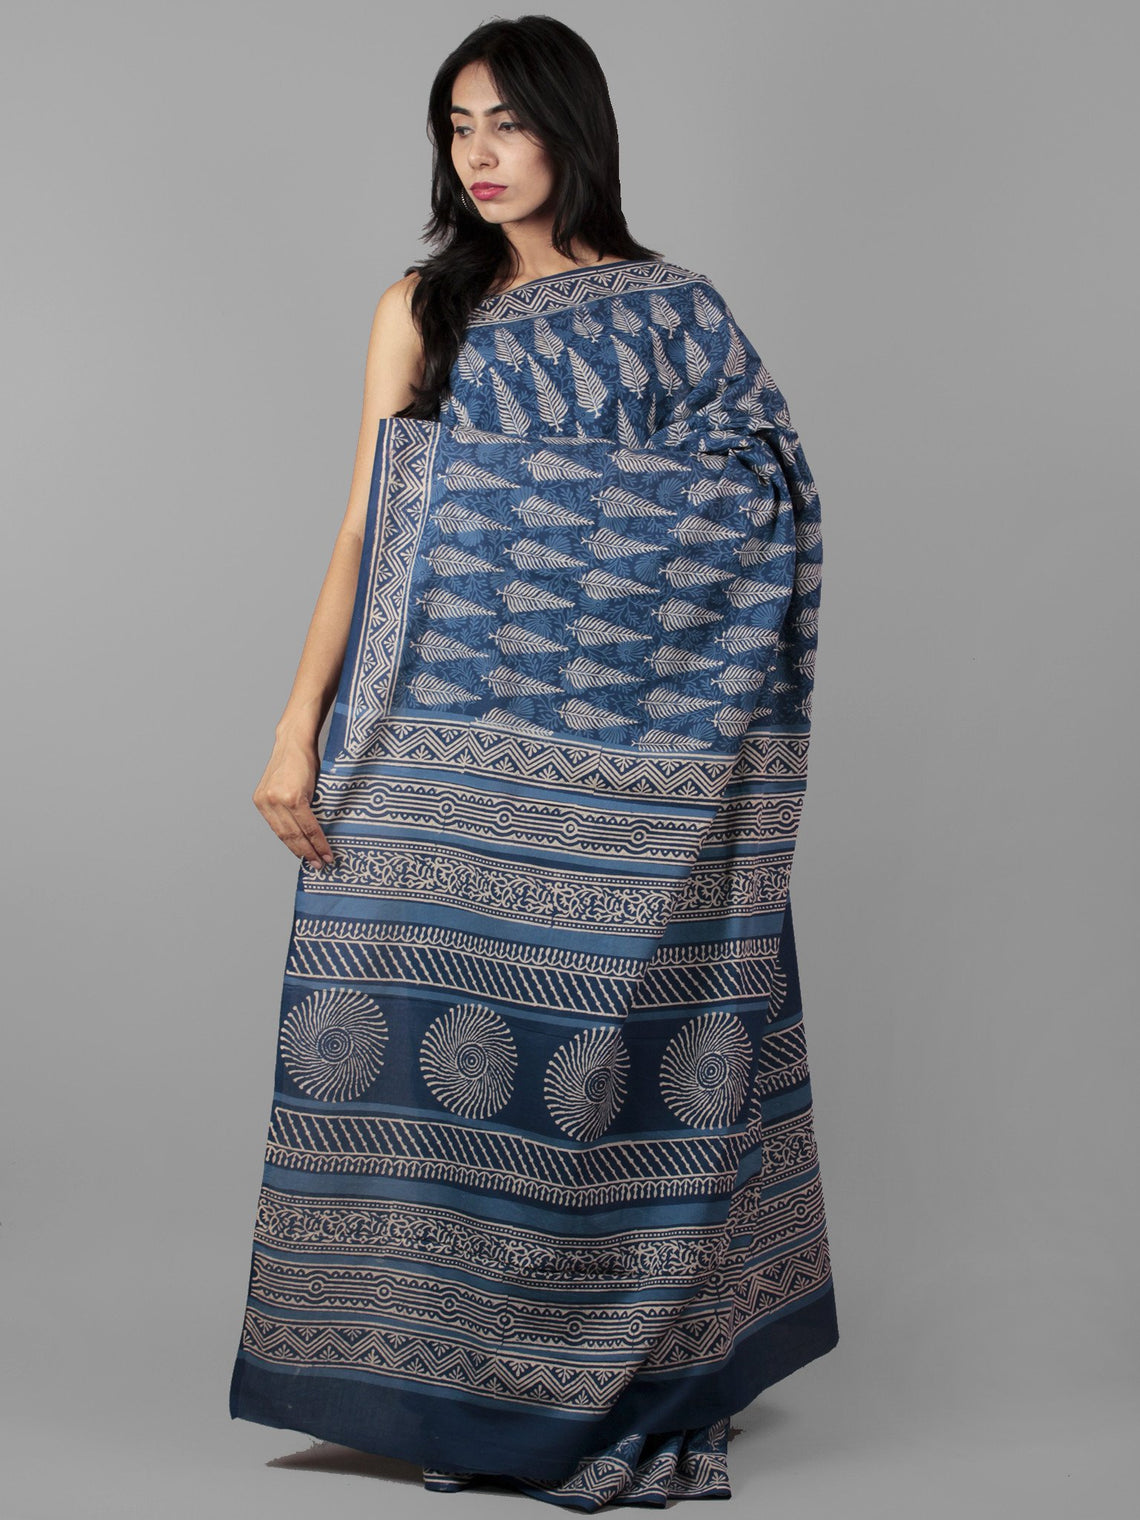 Indigo Ivory Hand Block Printed in Natural Colors Cotton Mul Saree - S031702016